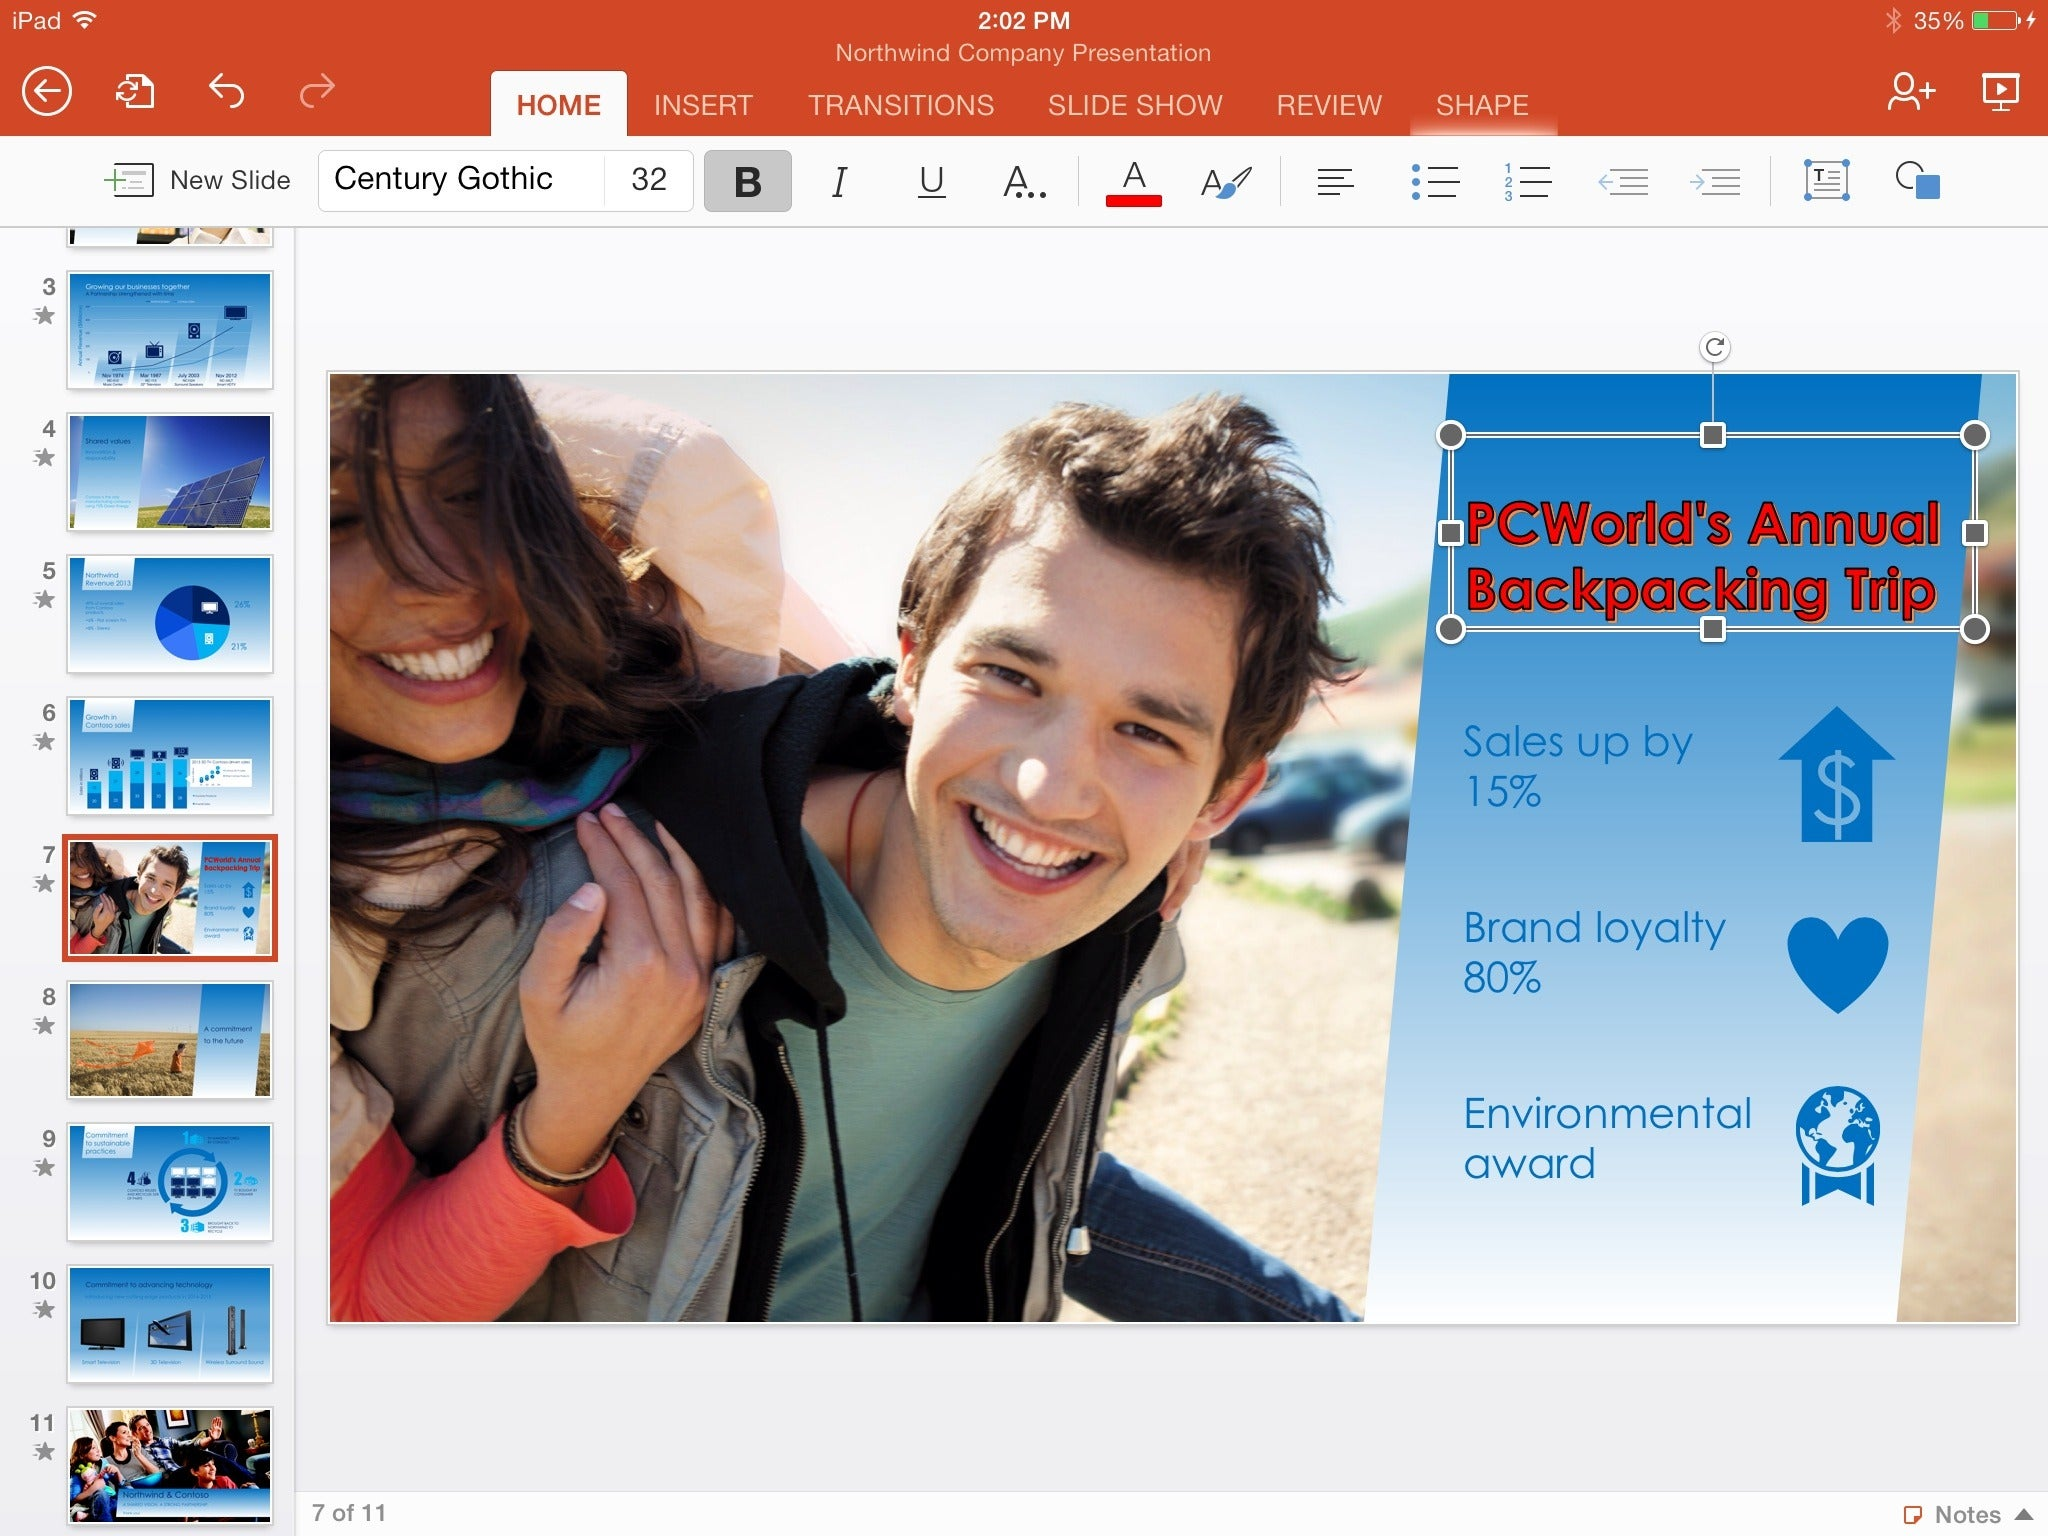 Running windows vista and microsoft office including powerpoint - Office For Ipad Powerpoint Edit